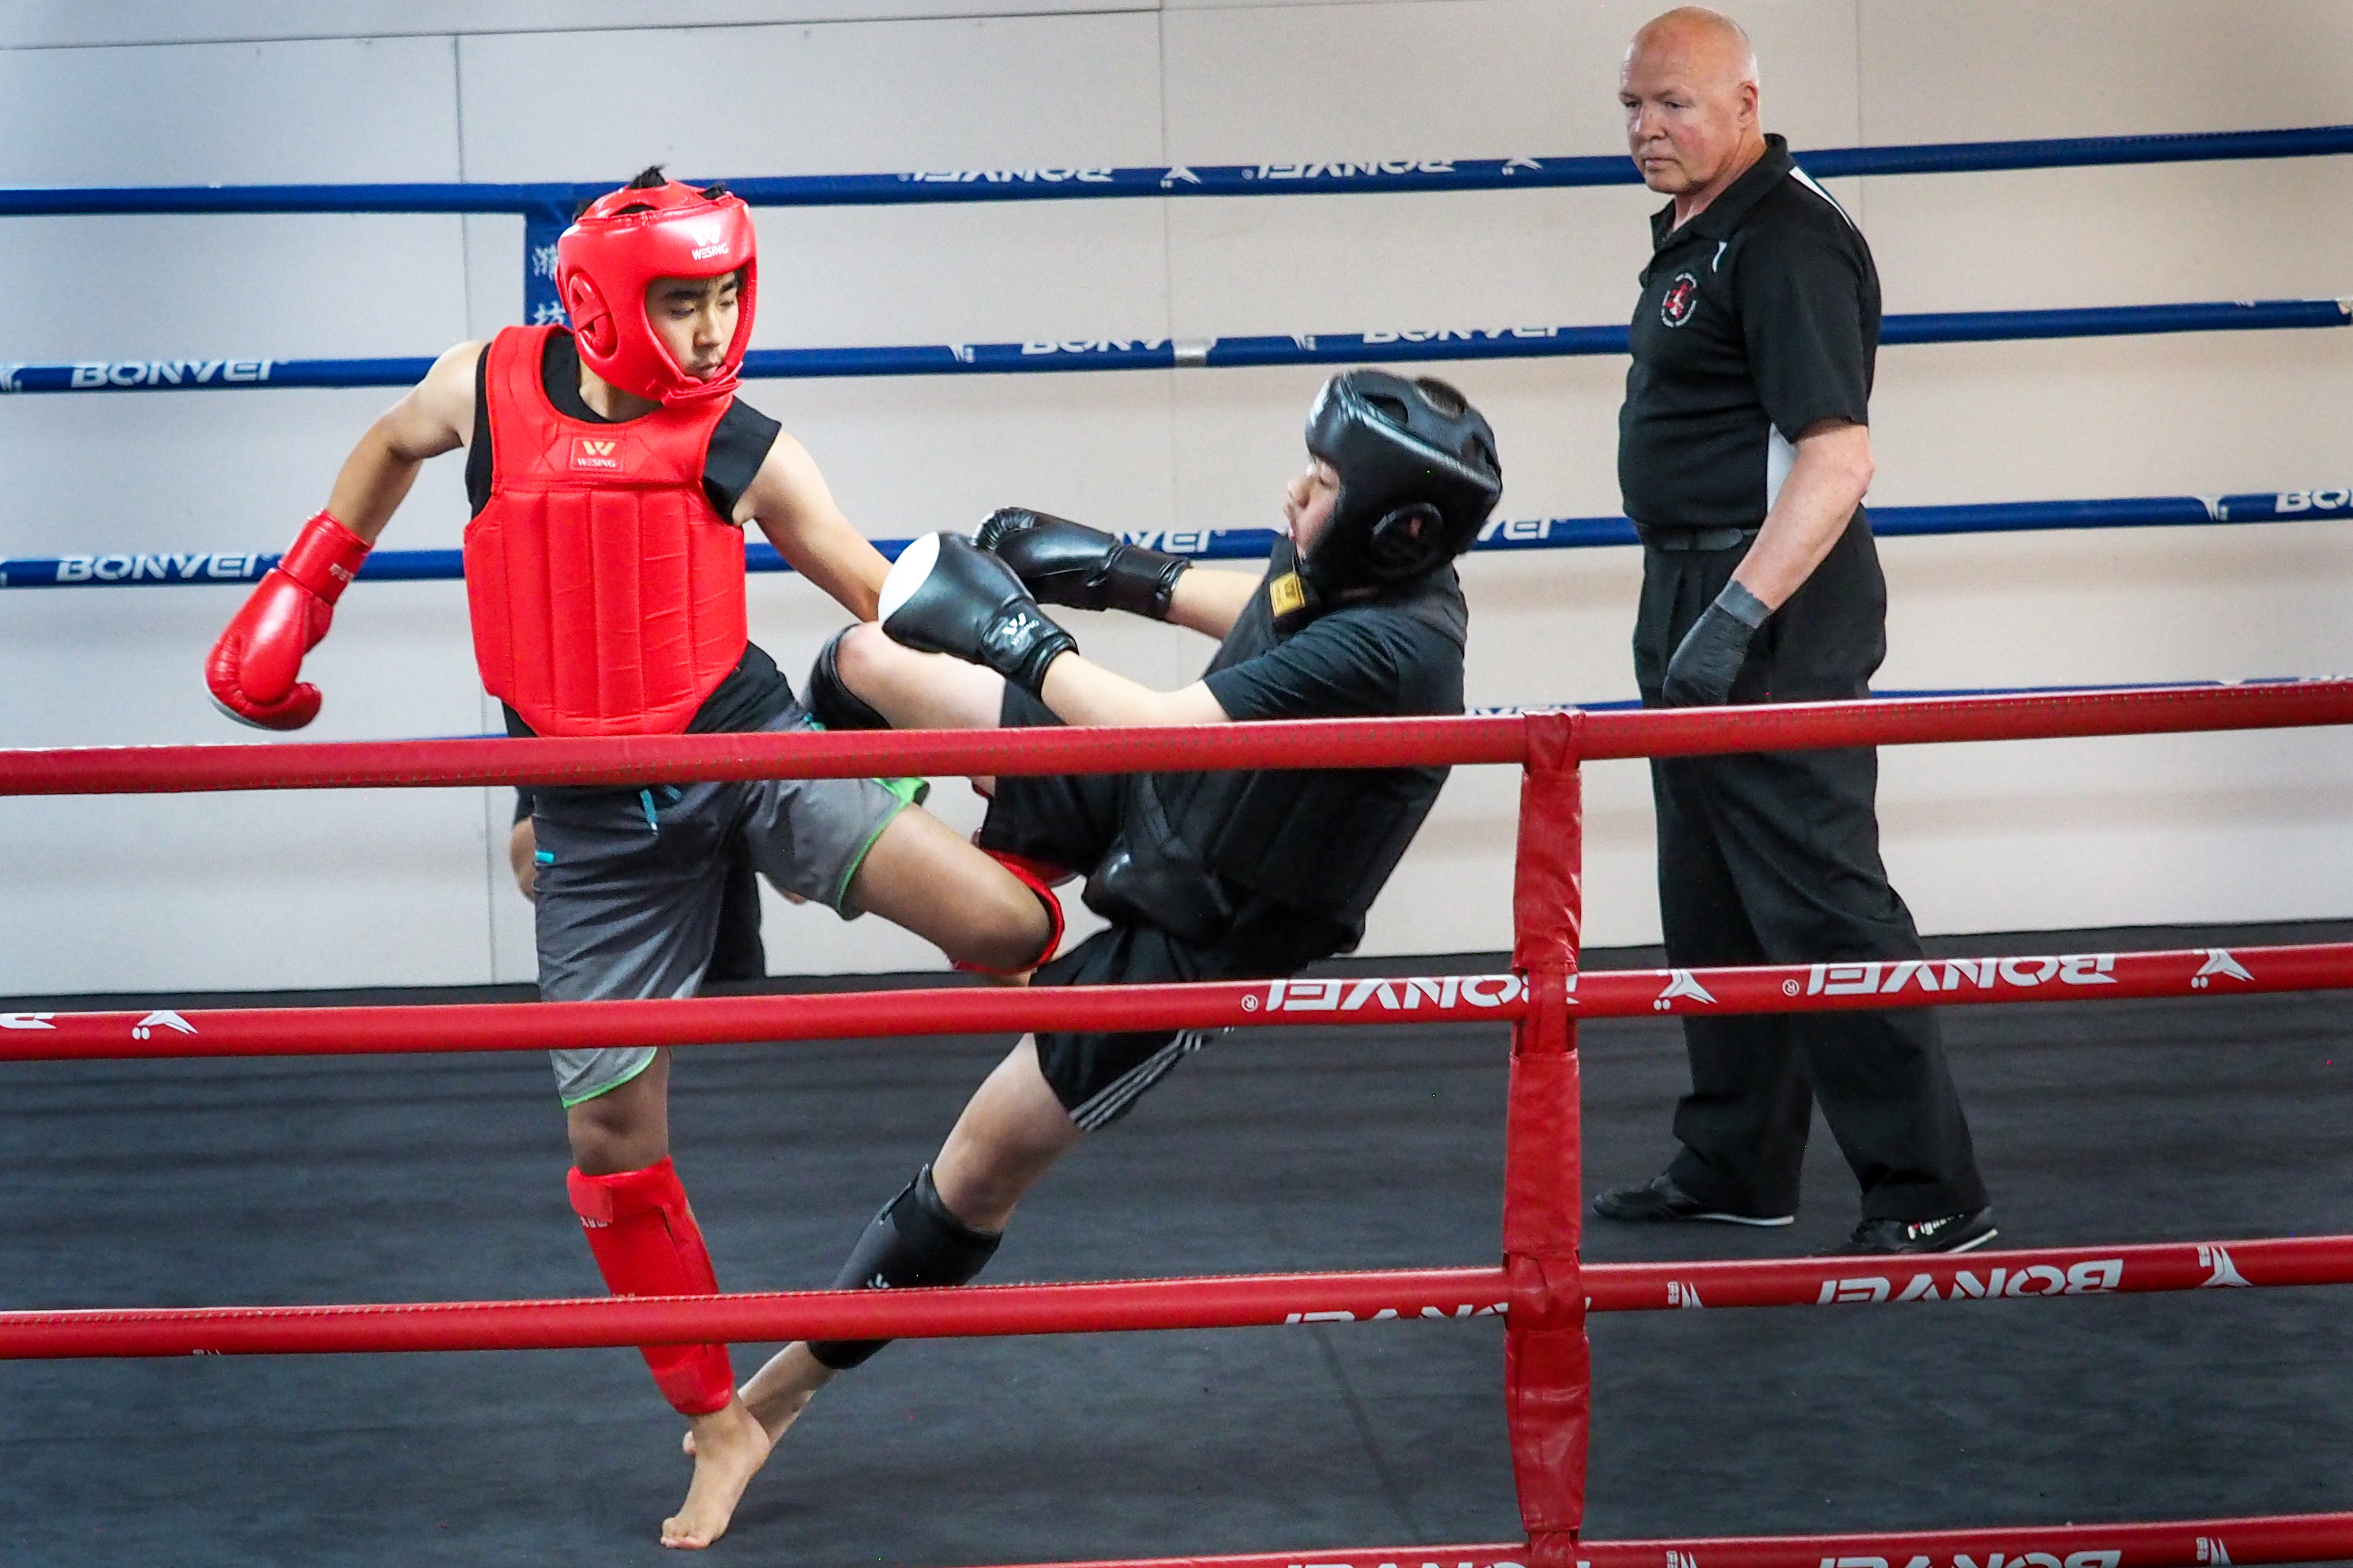 Sanda Kickboxing - Ryan Shen about to put his opponent down